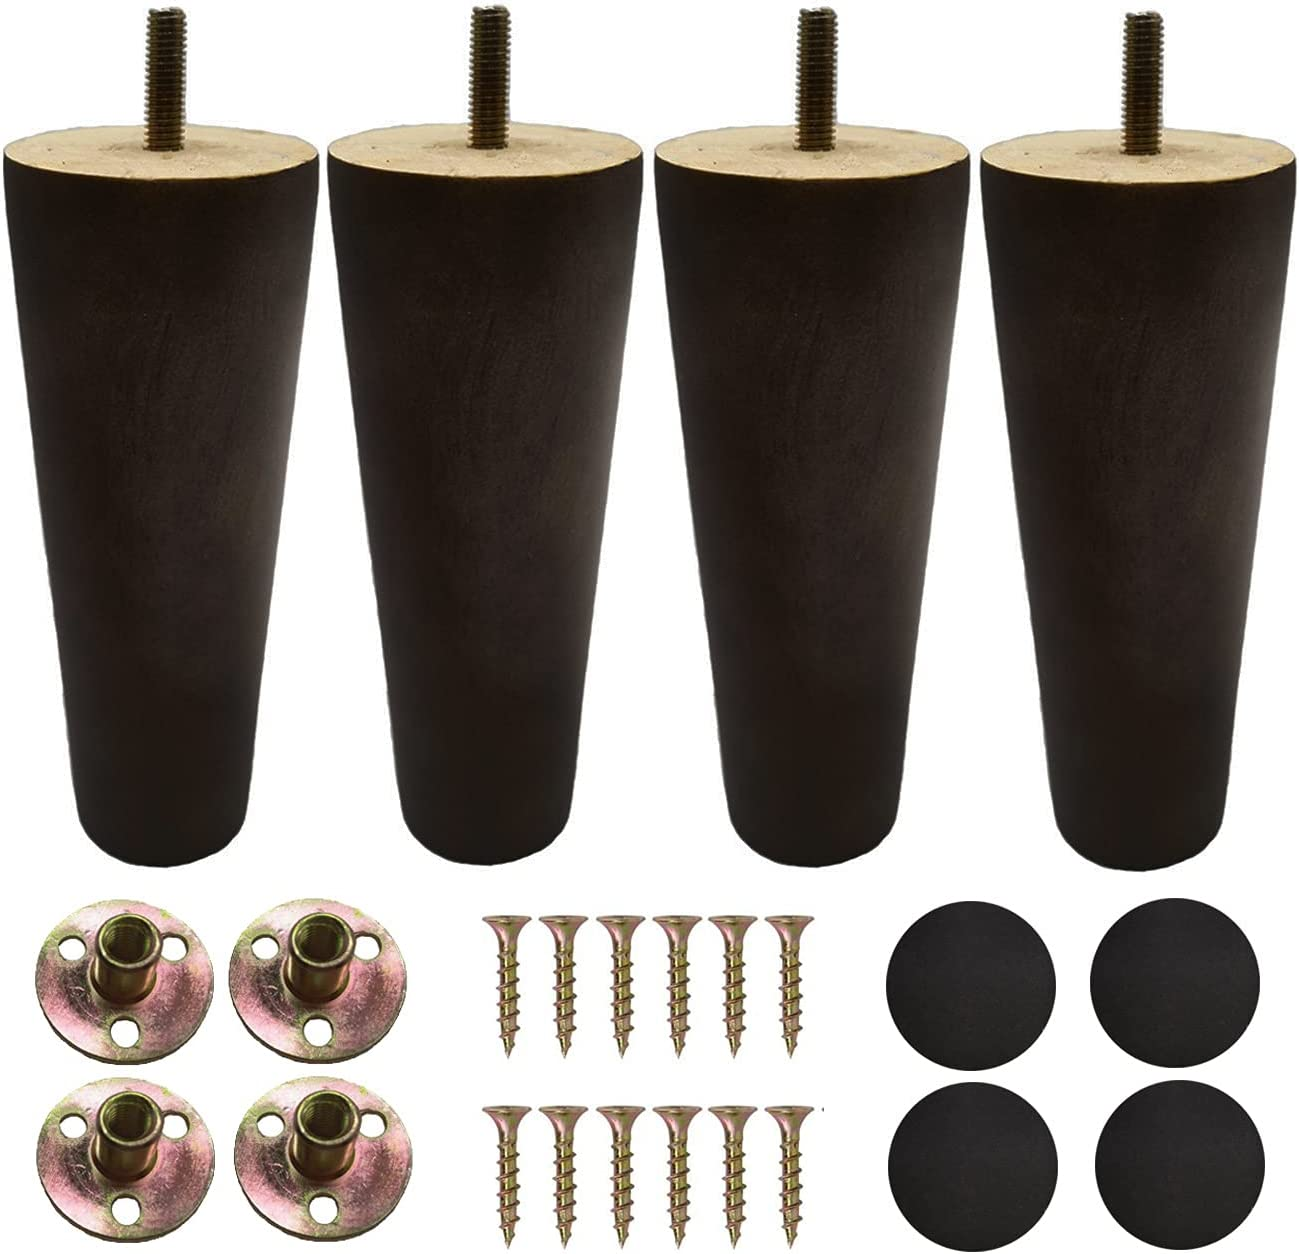 Furniture Legs Sofa Couch Leg Replacement Parts Table Feet Solid Wood Replace Legs 6 inch DIY for Desk Cabinet Bench Dresser Loveseat Chair Ottoman Bookcase Round Set of 4 (Dark brown, 6 inch)